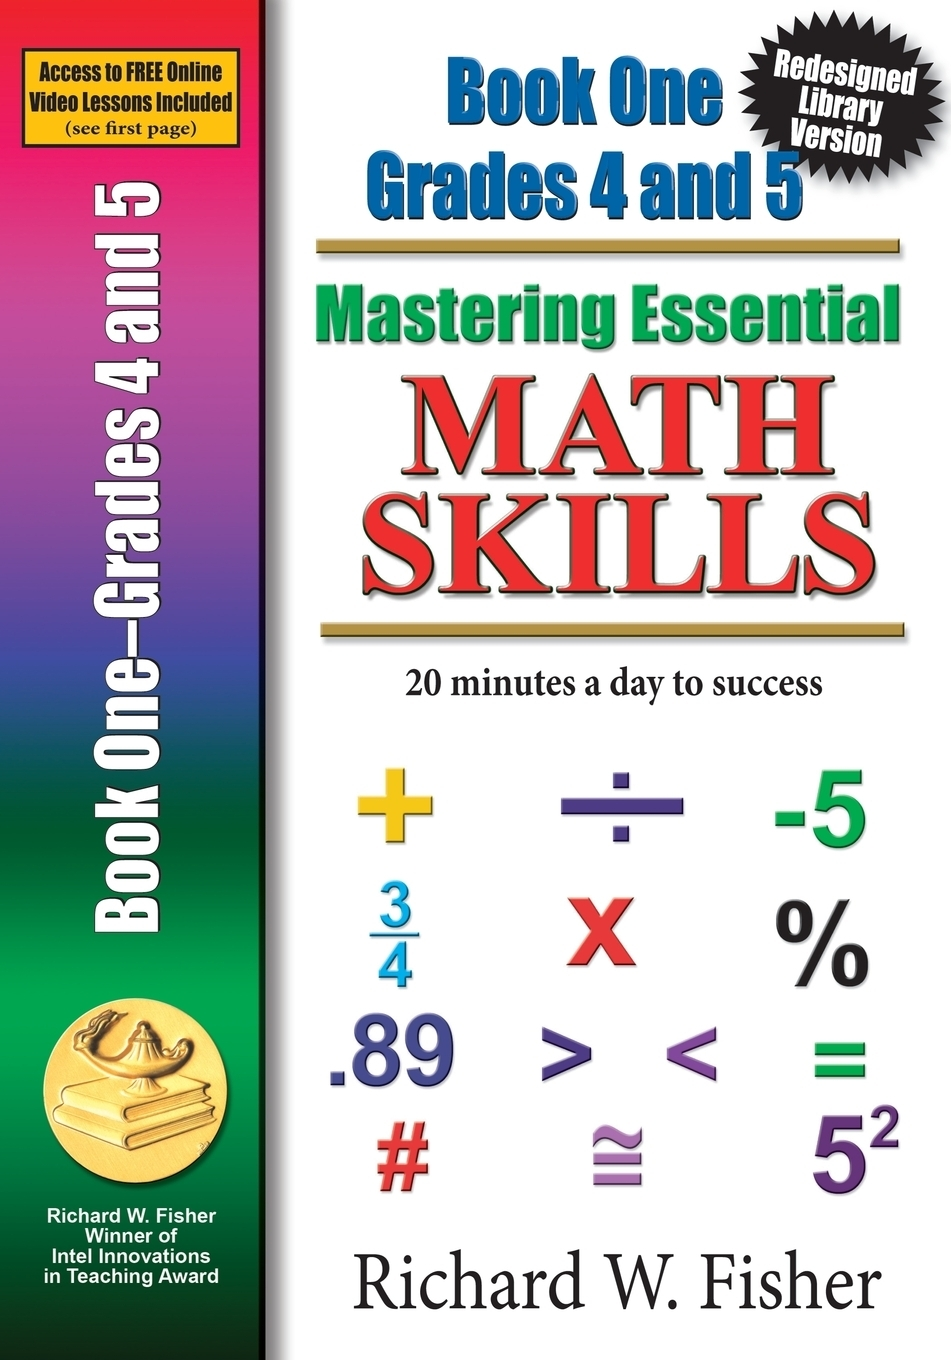 Richard W Fisher Mastering Essential Math Skills Book 1 Grades 4-5. Re-designed Library Version